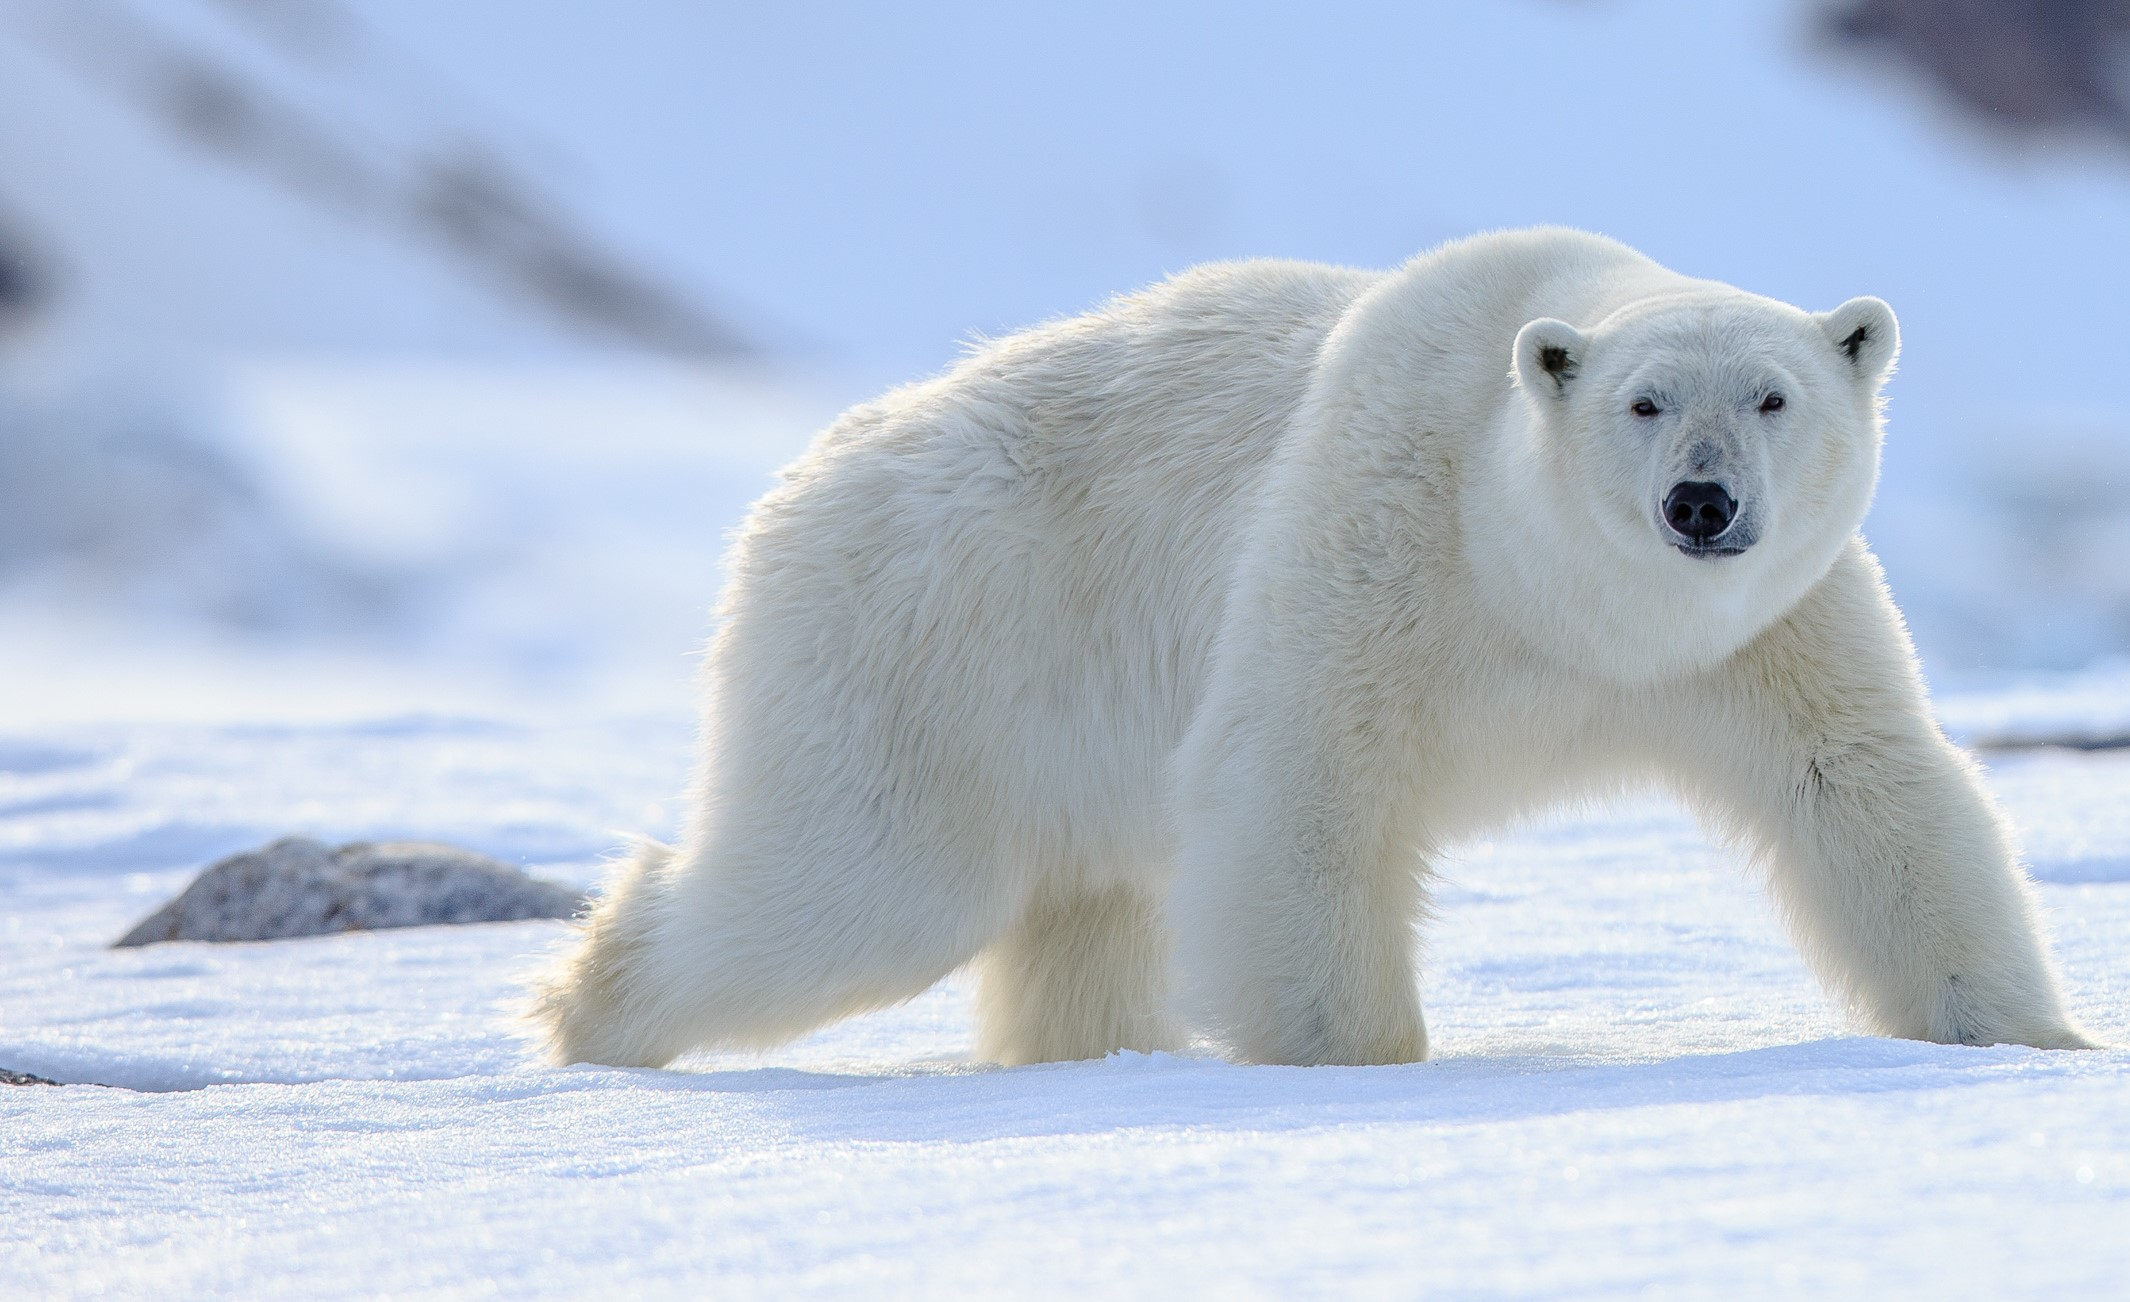 Polar bears are at risk of climate change. Is human-centred design the best method for dealing with such a threat?